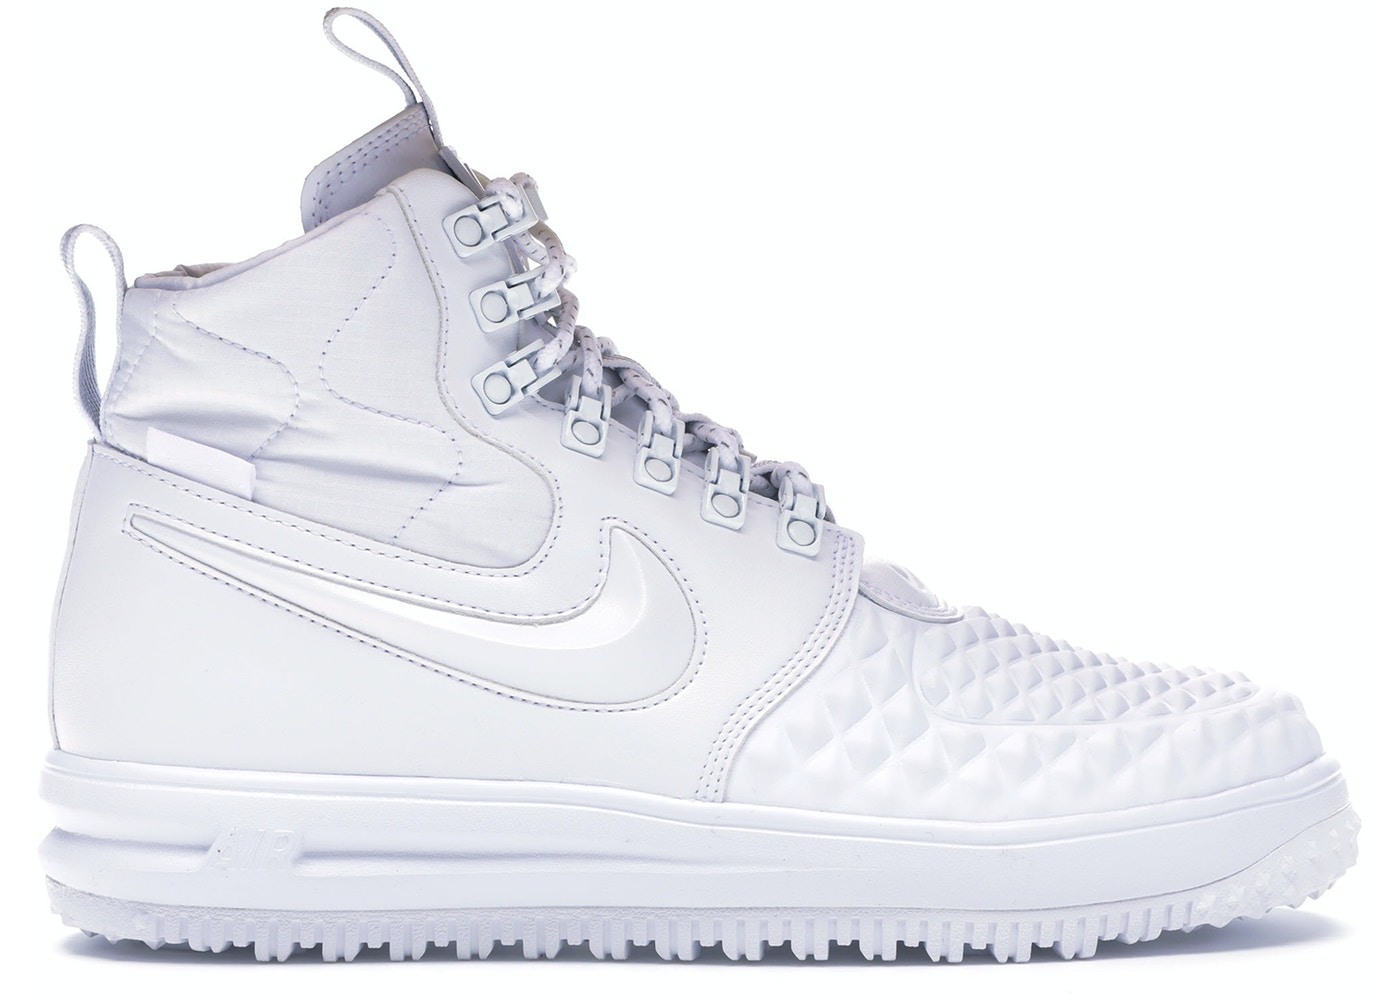 detailed look 657fe 8e93b Nike Lunar Force 1 Duckboot Winter White - AA1123-100